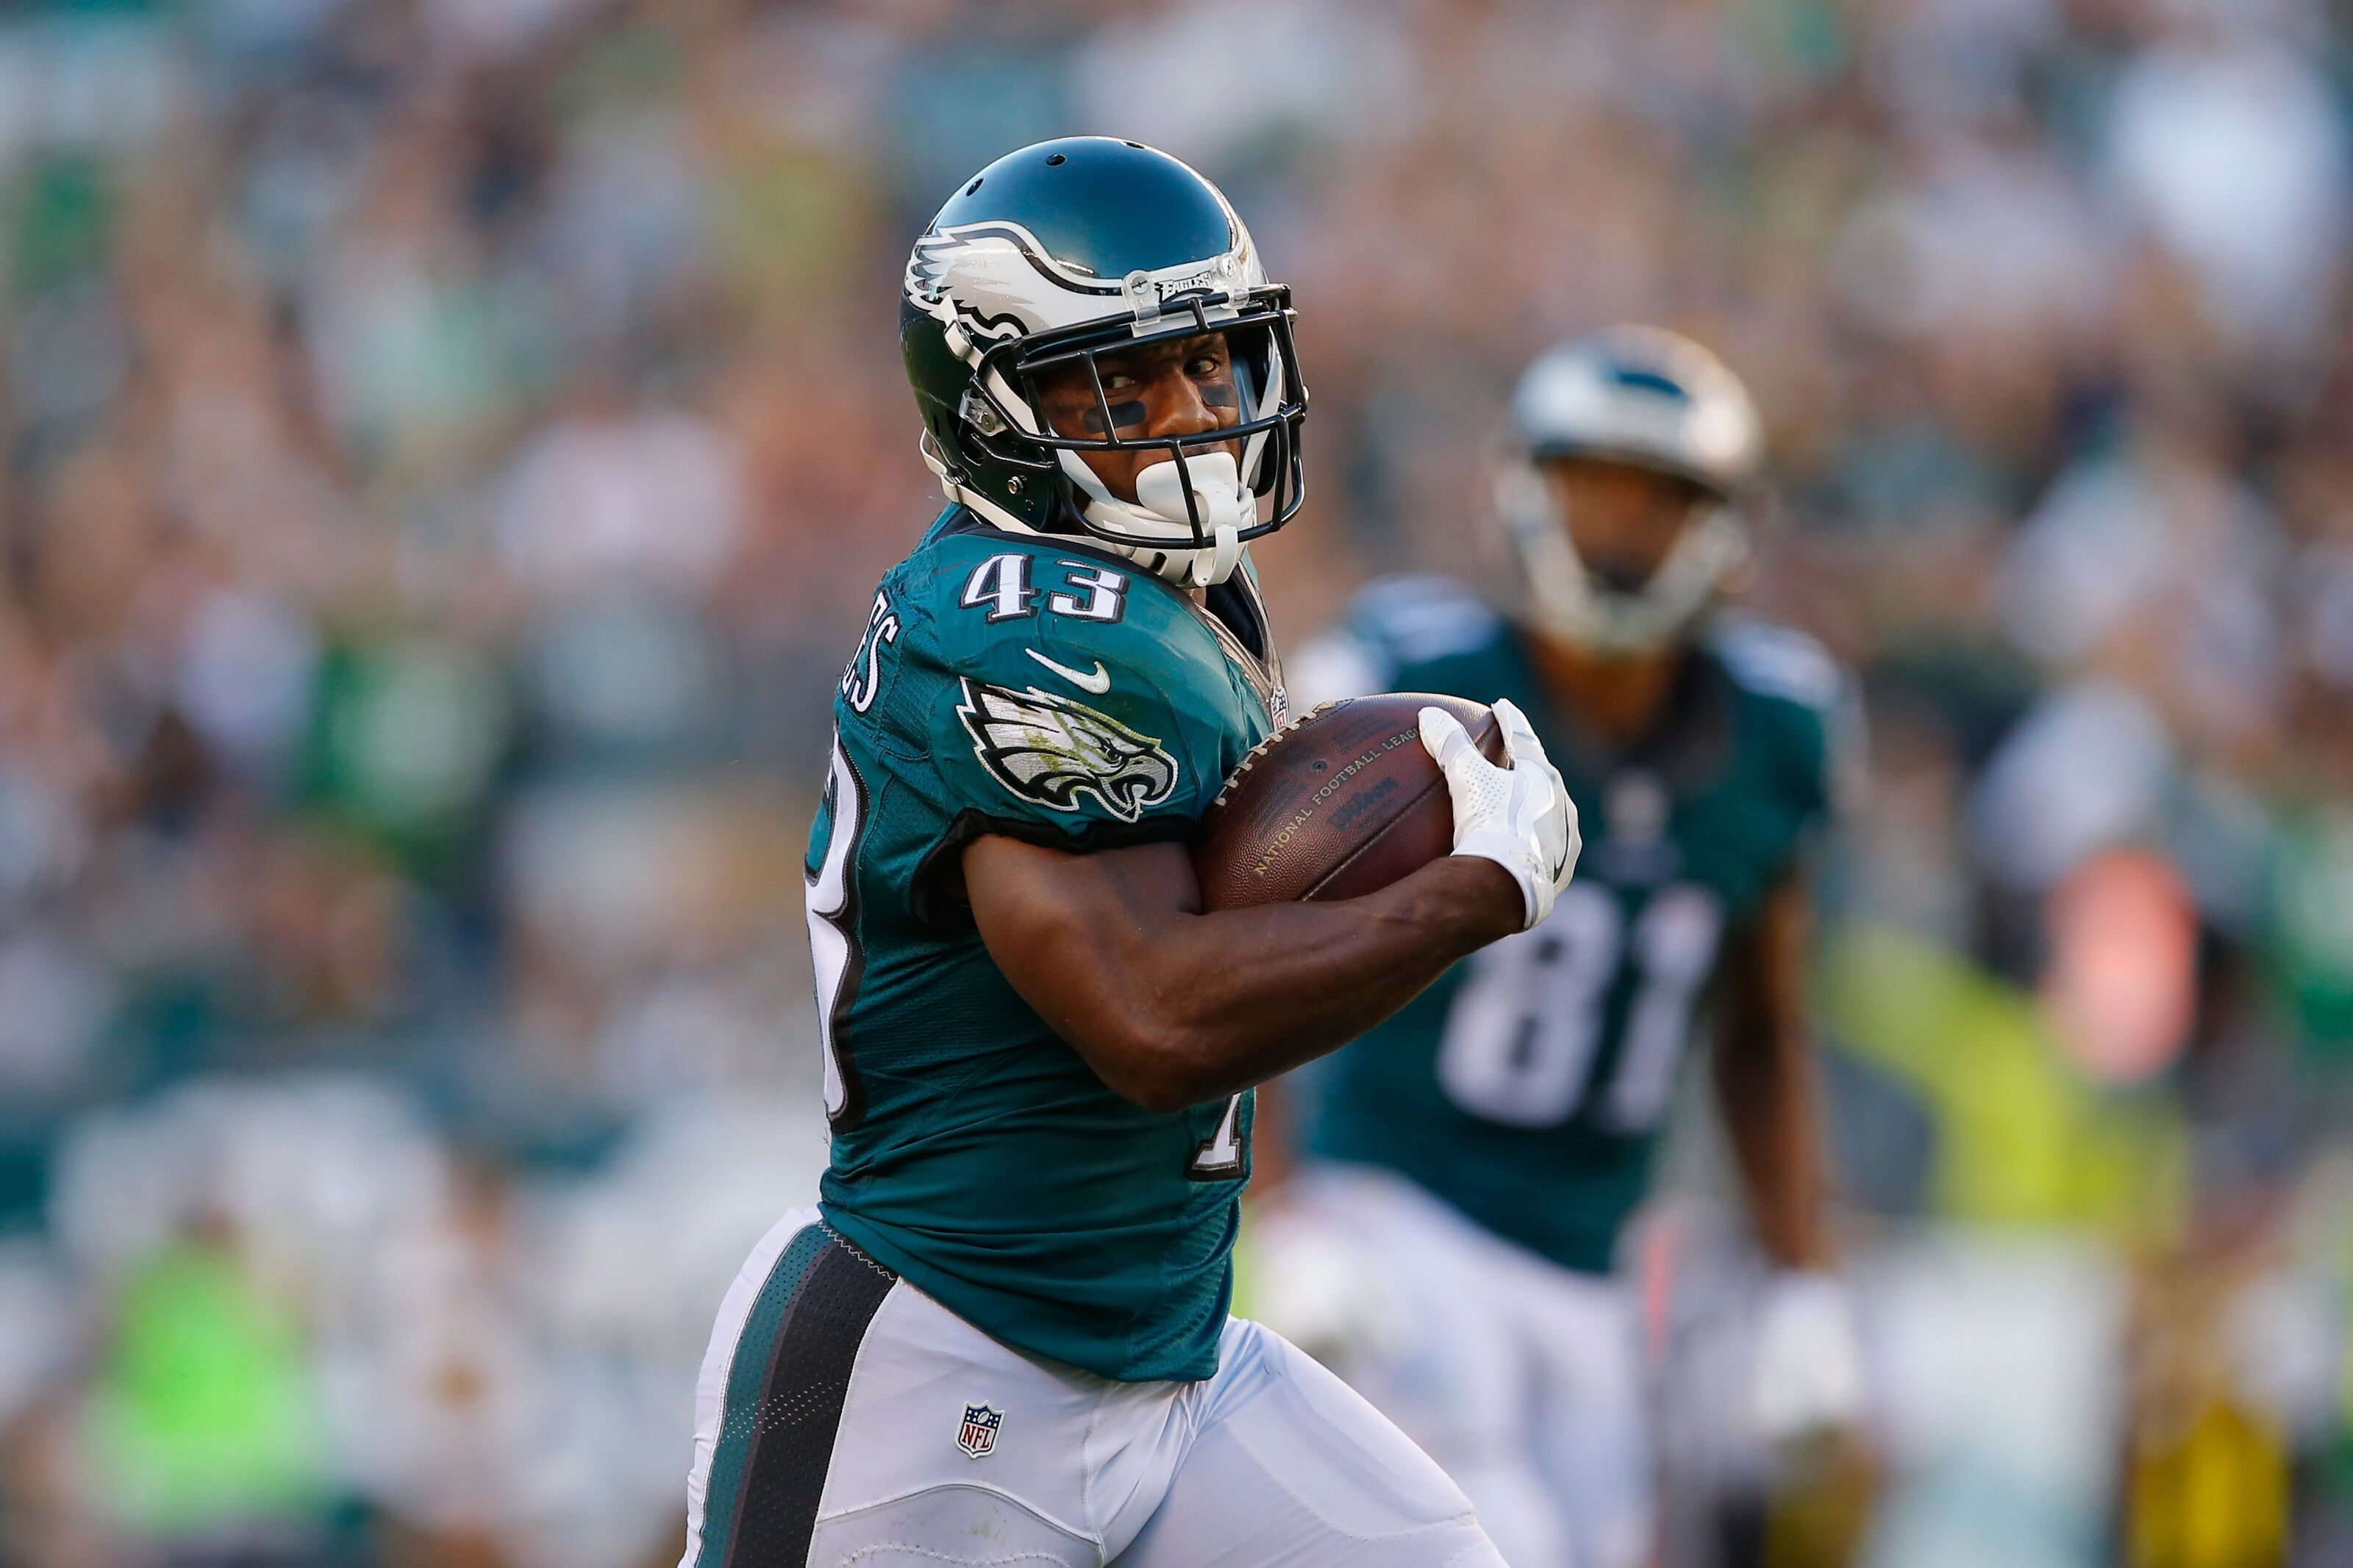 fbad97a0dff Should Philadelphia Eagles limit Darren Sproles to special teams only?